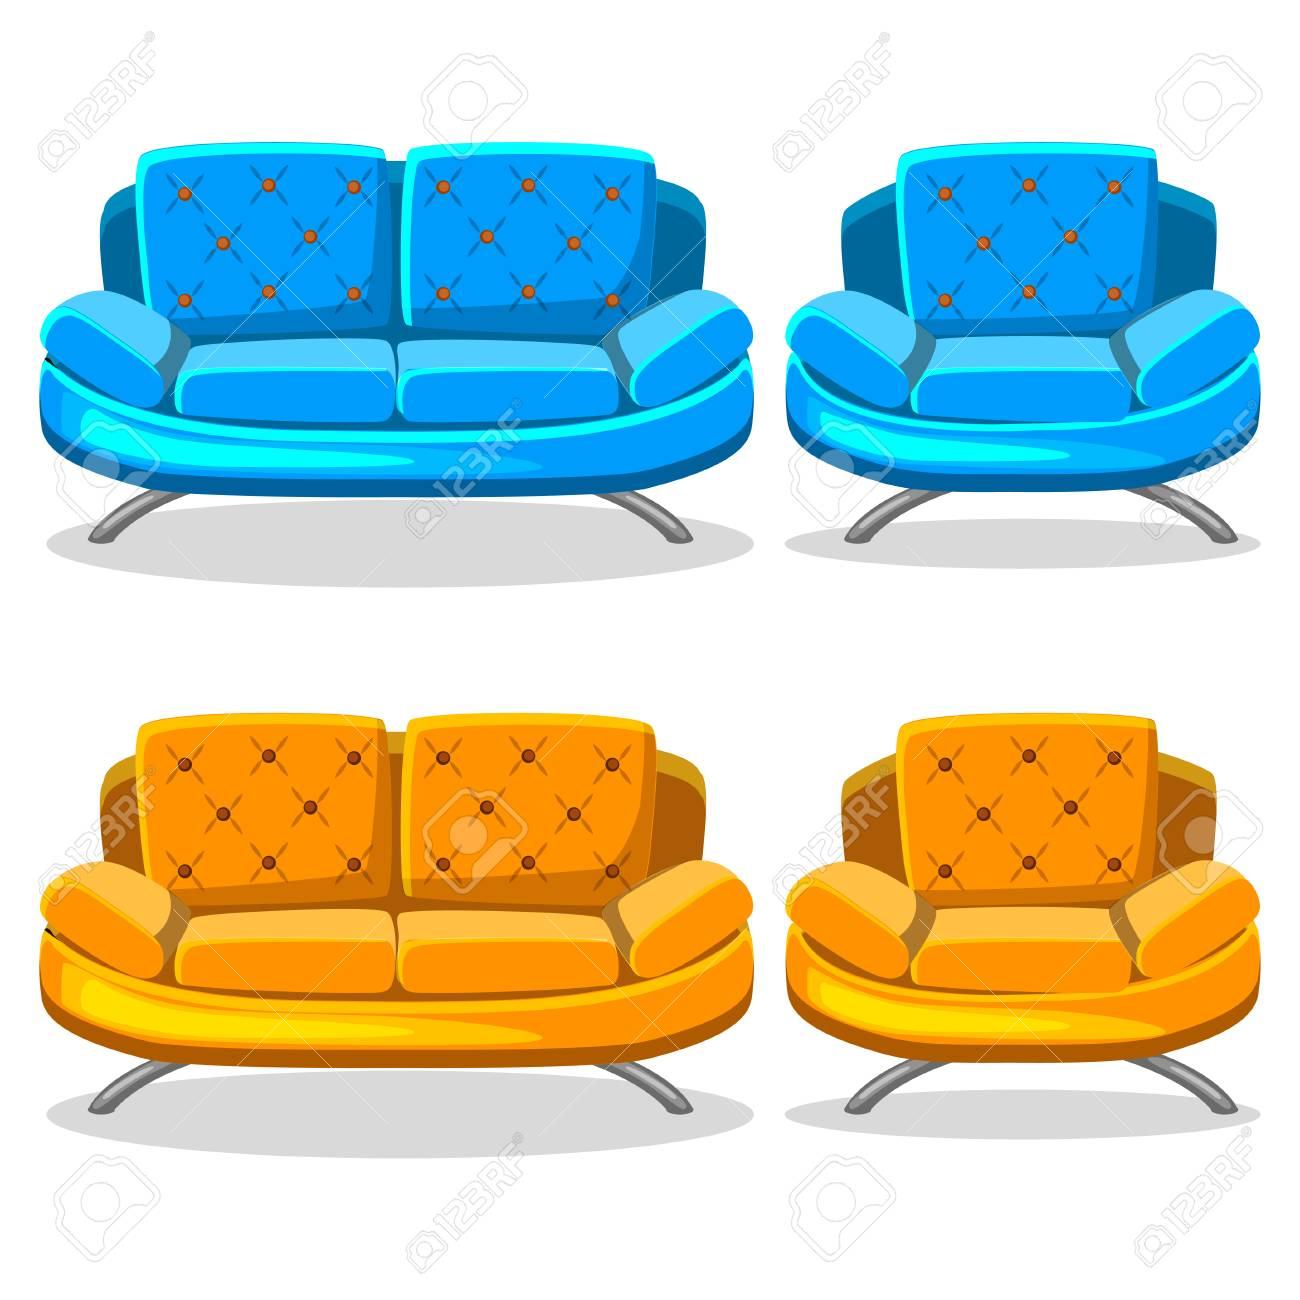 Cartoon Colorful Armchair And Sofa, Set 10 In Vector Stock Photo   75395617